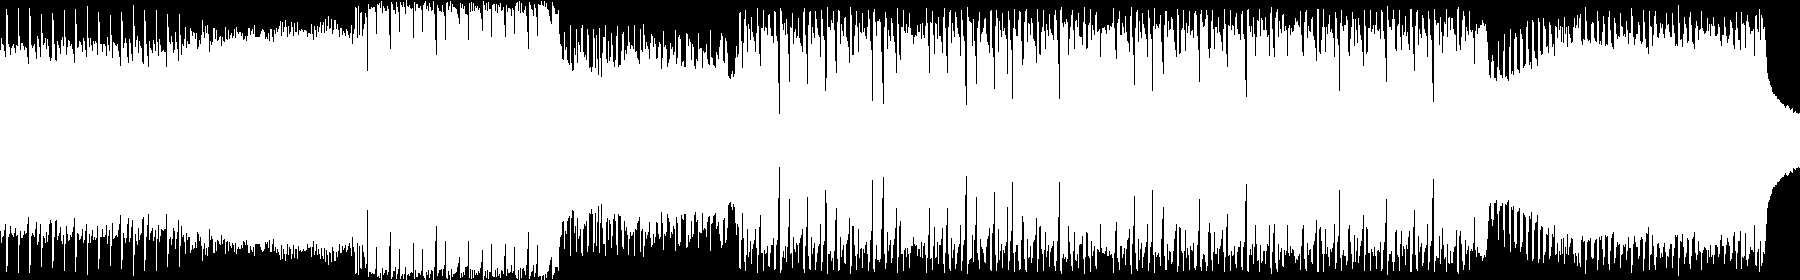 Bass Music & G House Megapack audio waveform